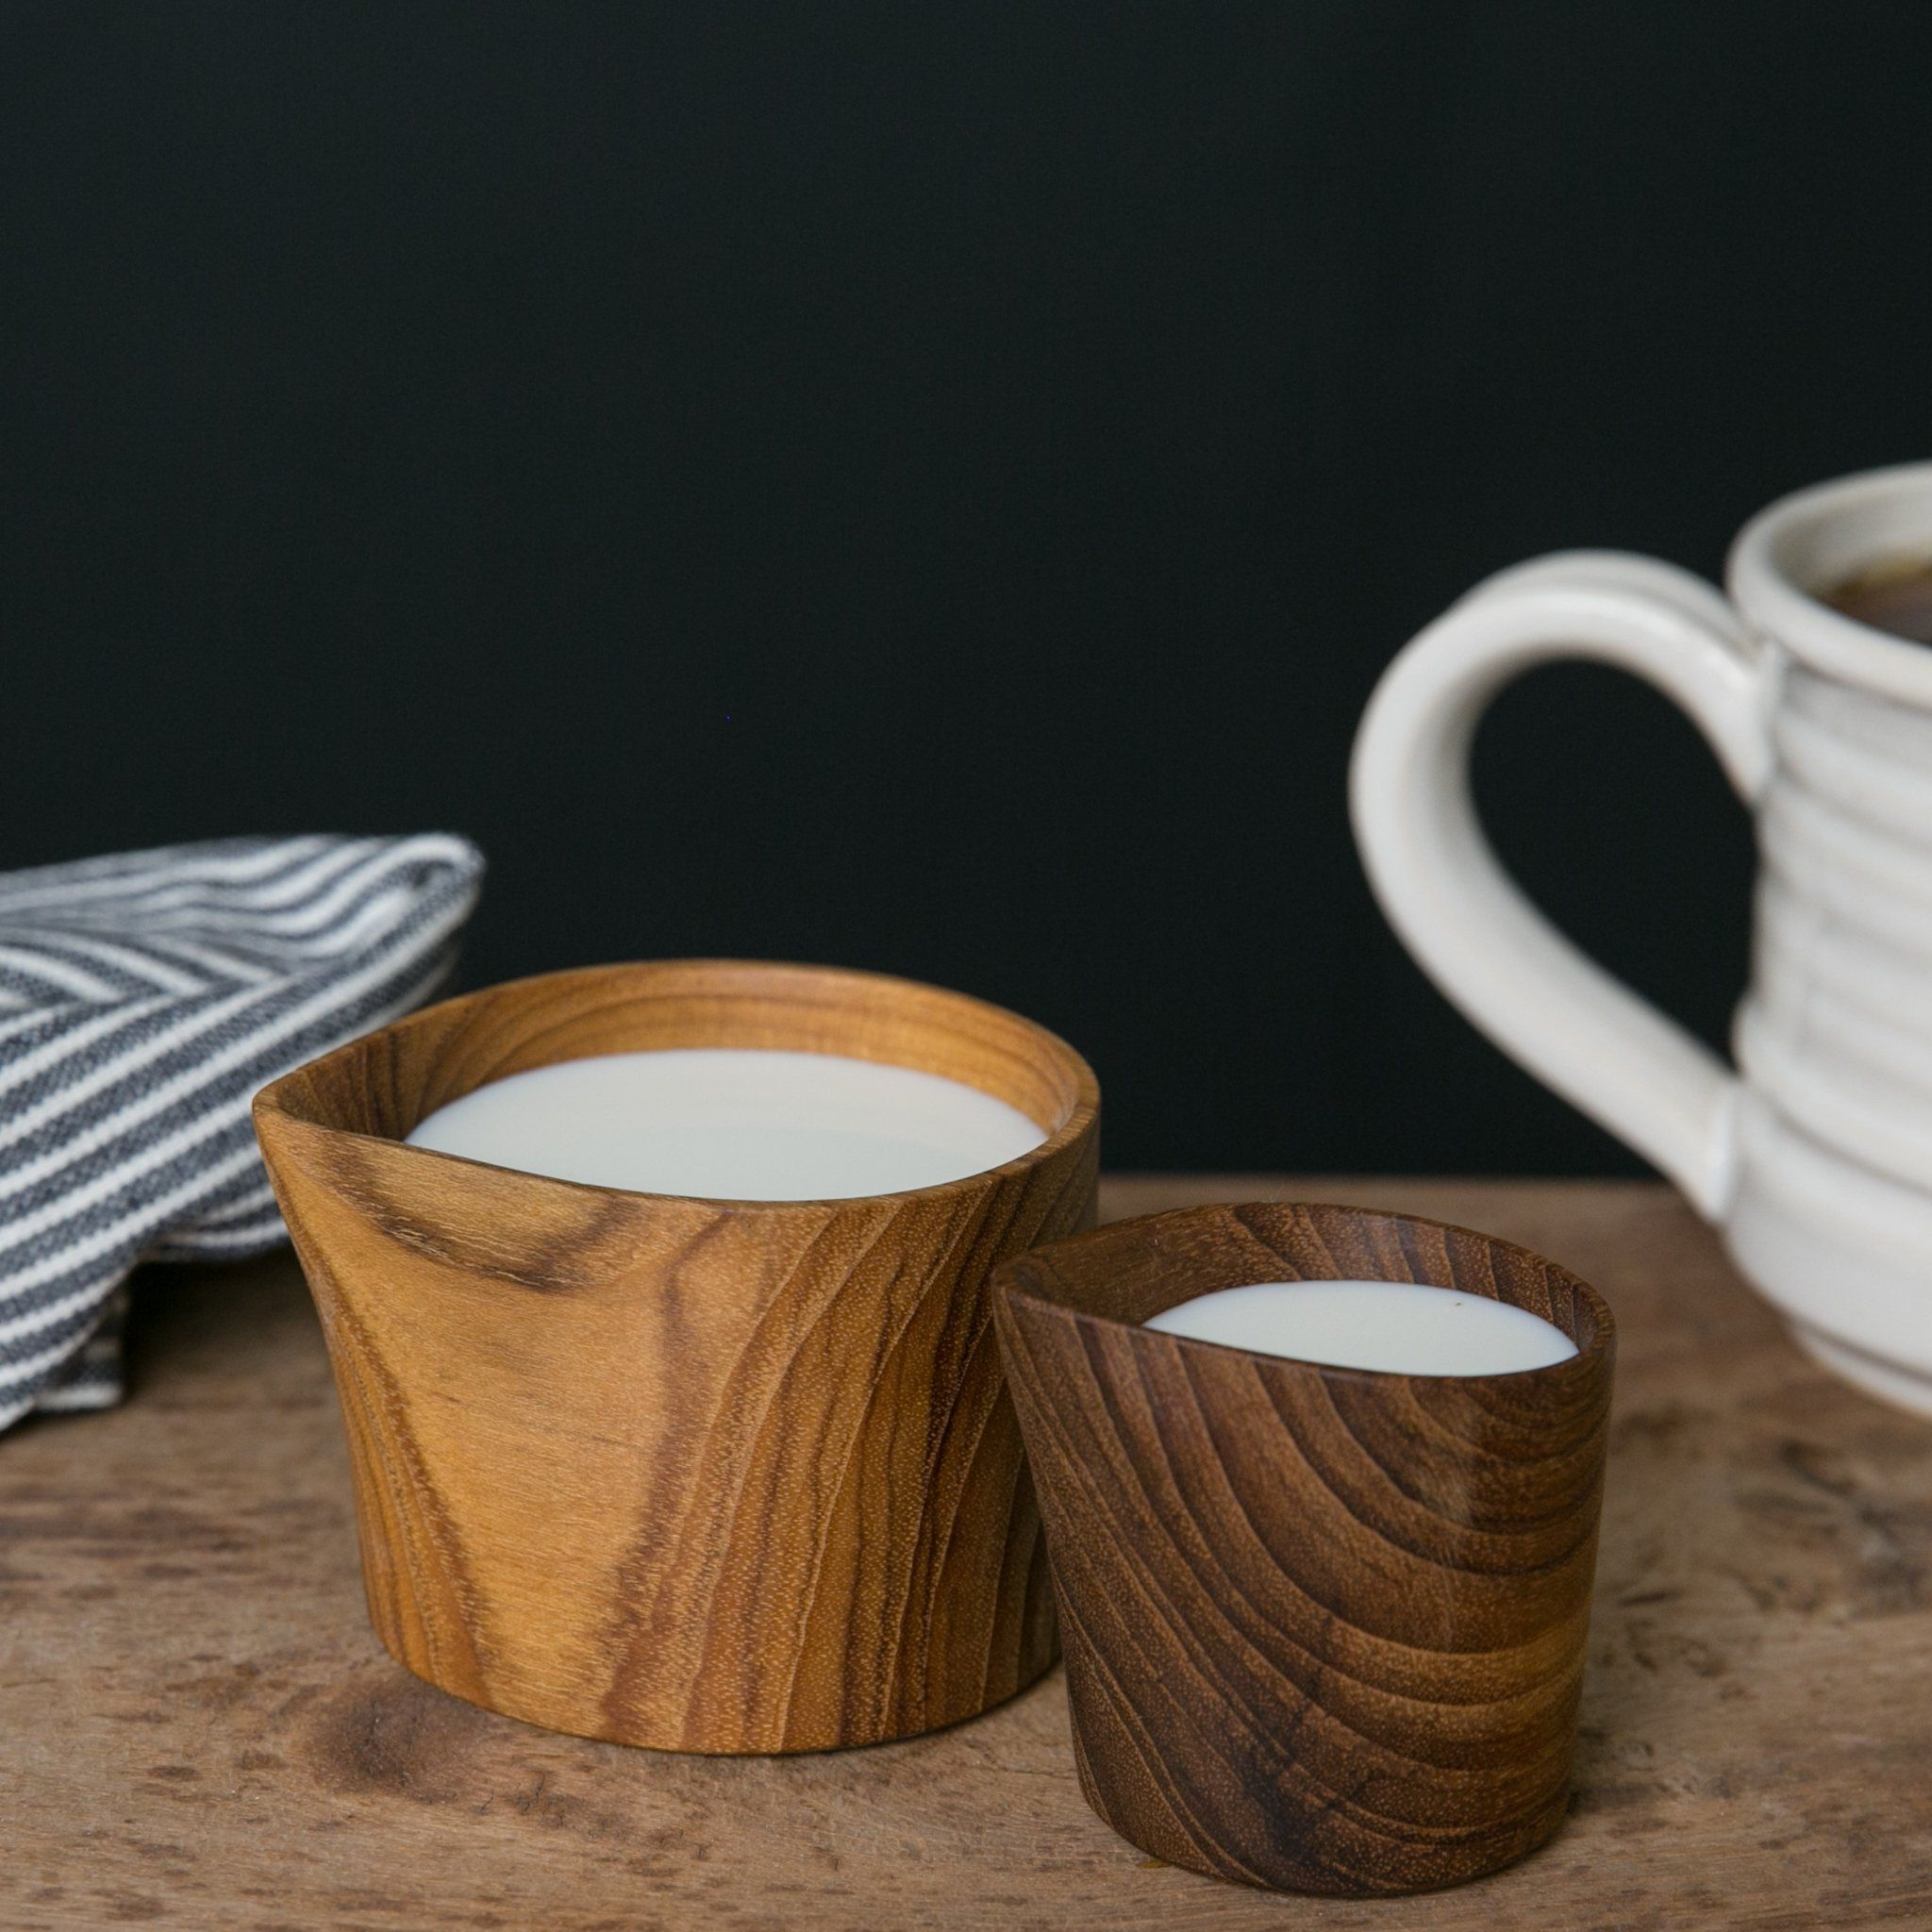 Teak Creamers   Magnolia Market   Chip U0026 Joanna Gaines. Our Teak Creamers  Are A Set Of Teak Wood Creamers. These Two Petite Creamers Have A Natural  Wood ...